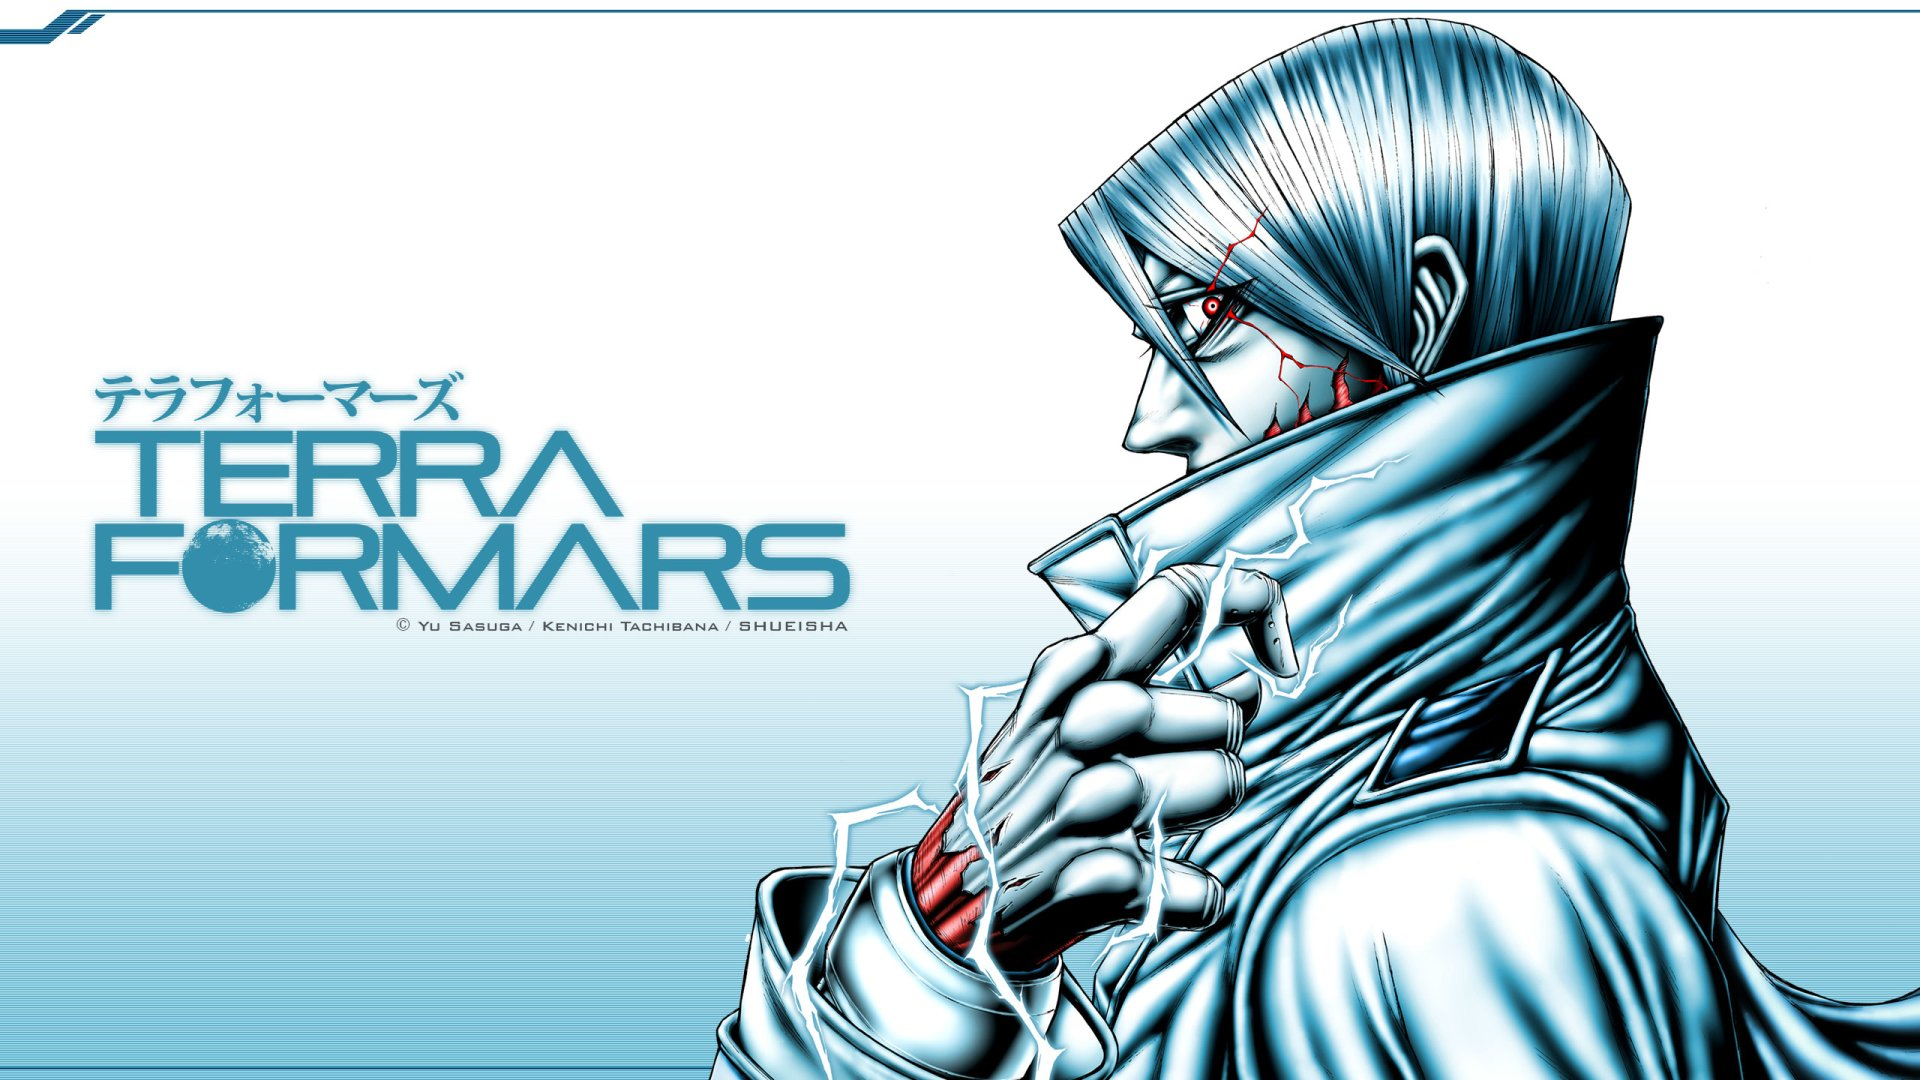 14 Terra Formars Hd Wallpapers Background Images Wallpaper Abyss